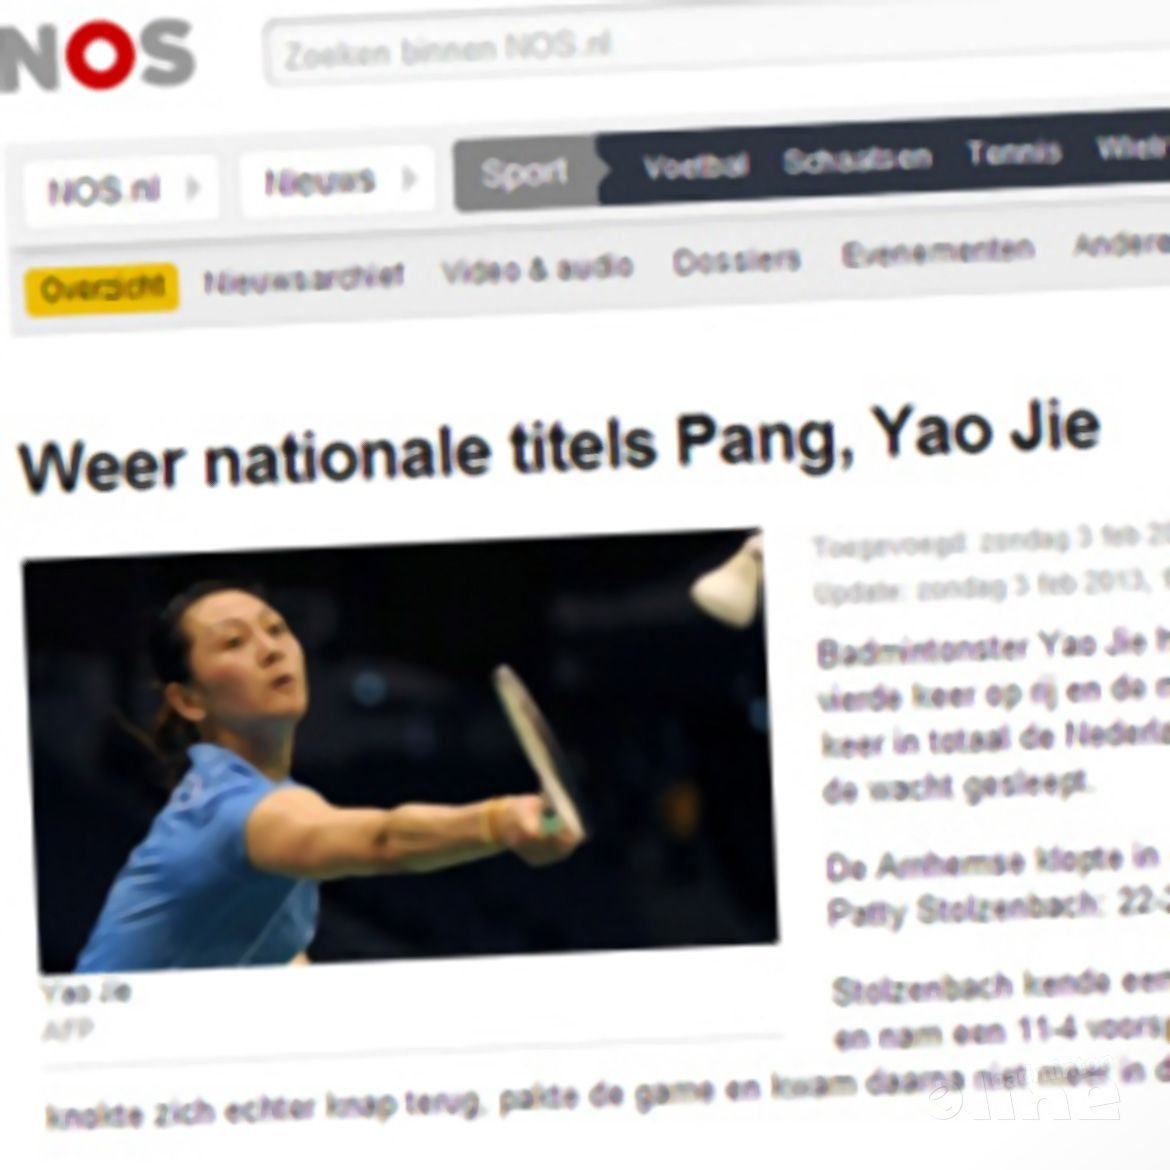 NOS: 'Weer nationale titels Pang, Yao Jie'